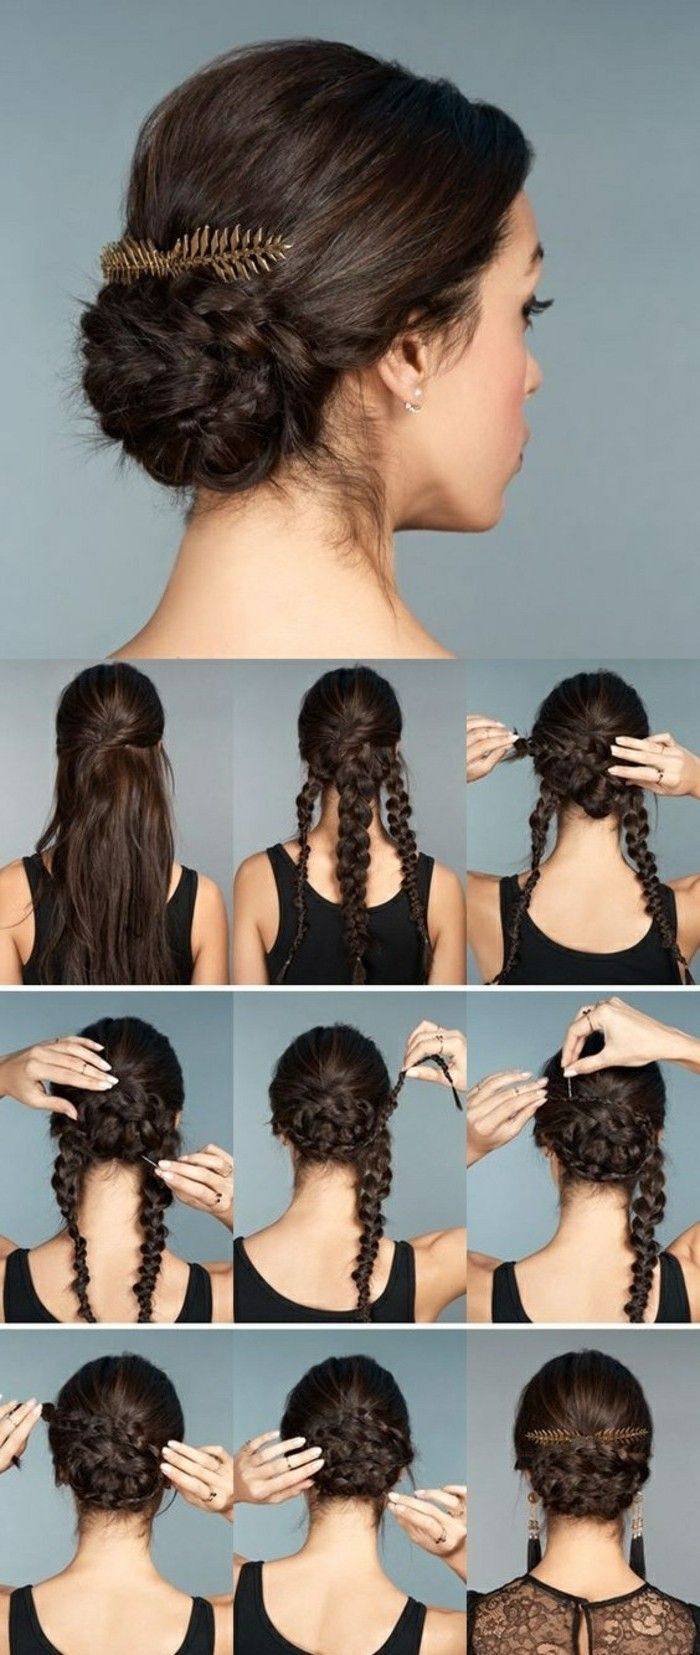 ▷ 1001 + ideas for beautiful hairstyles + DIY instructions #bunupdo